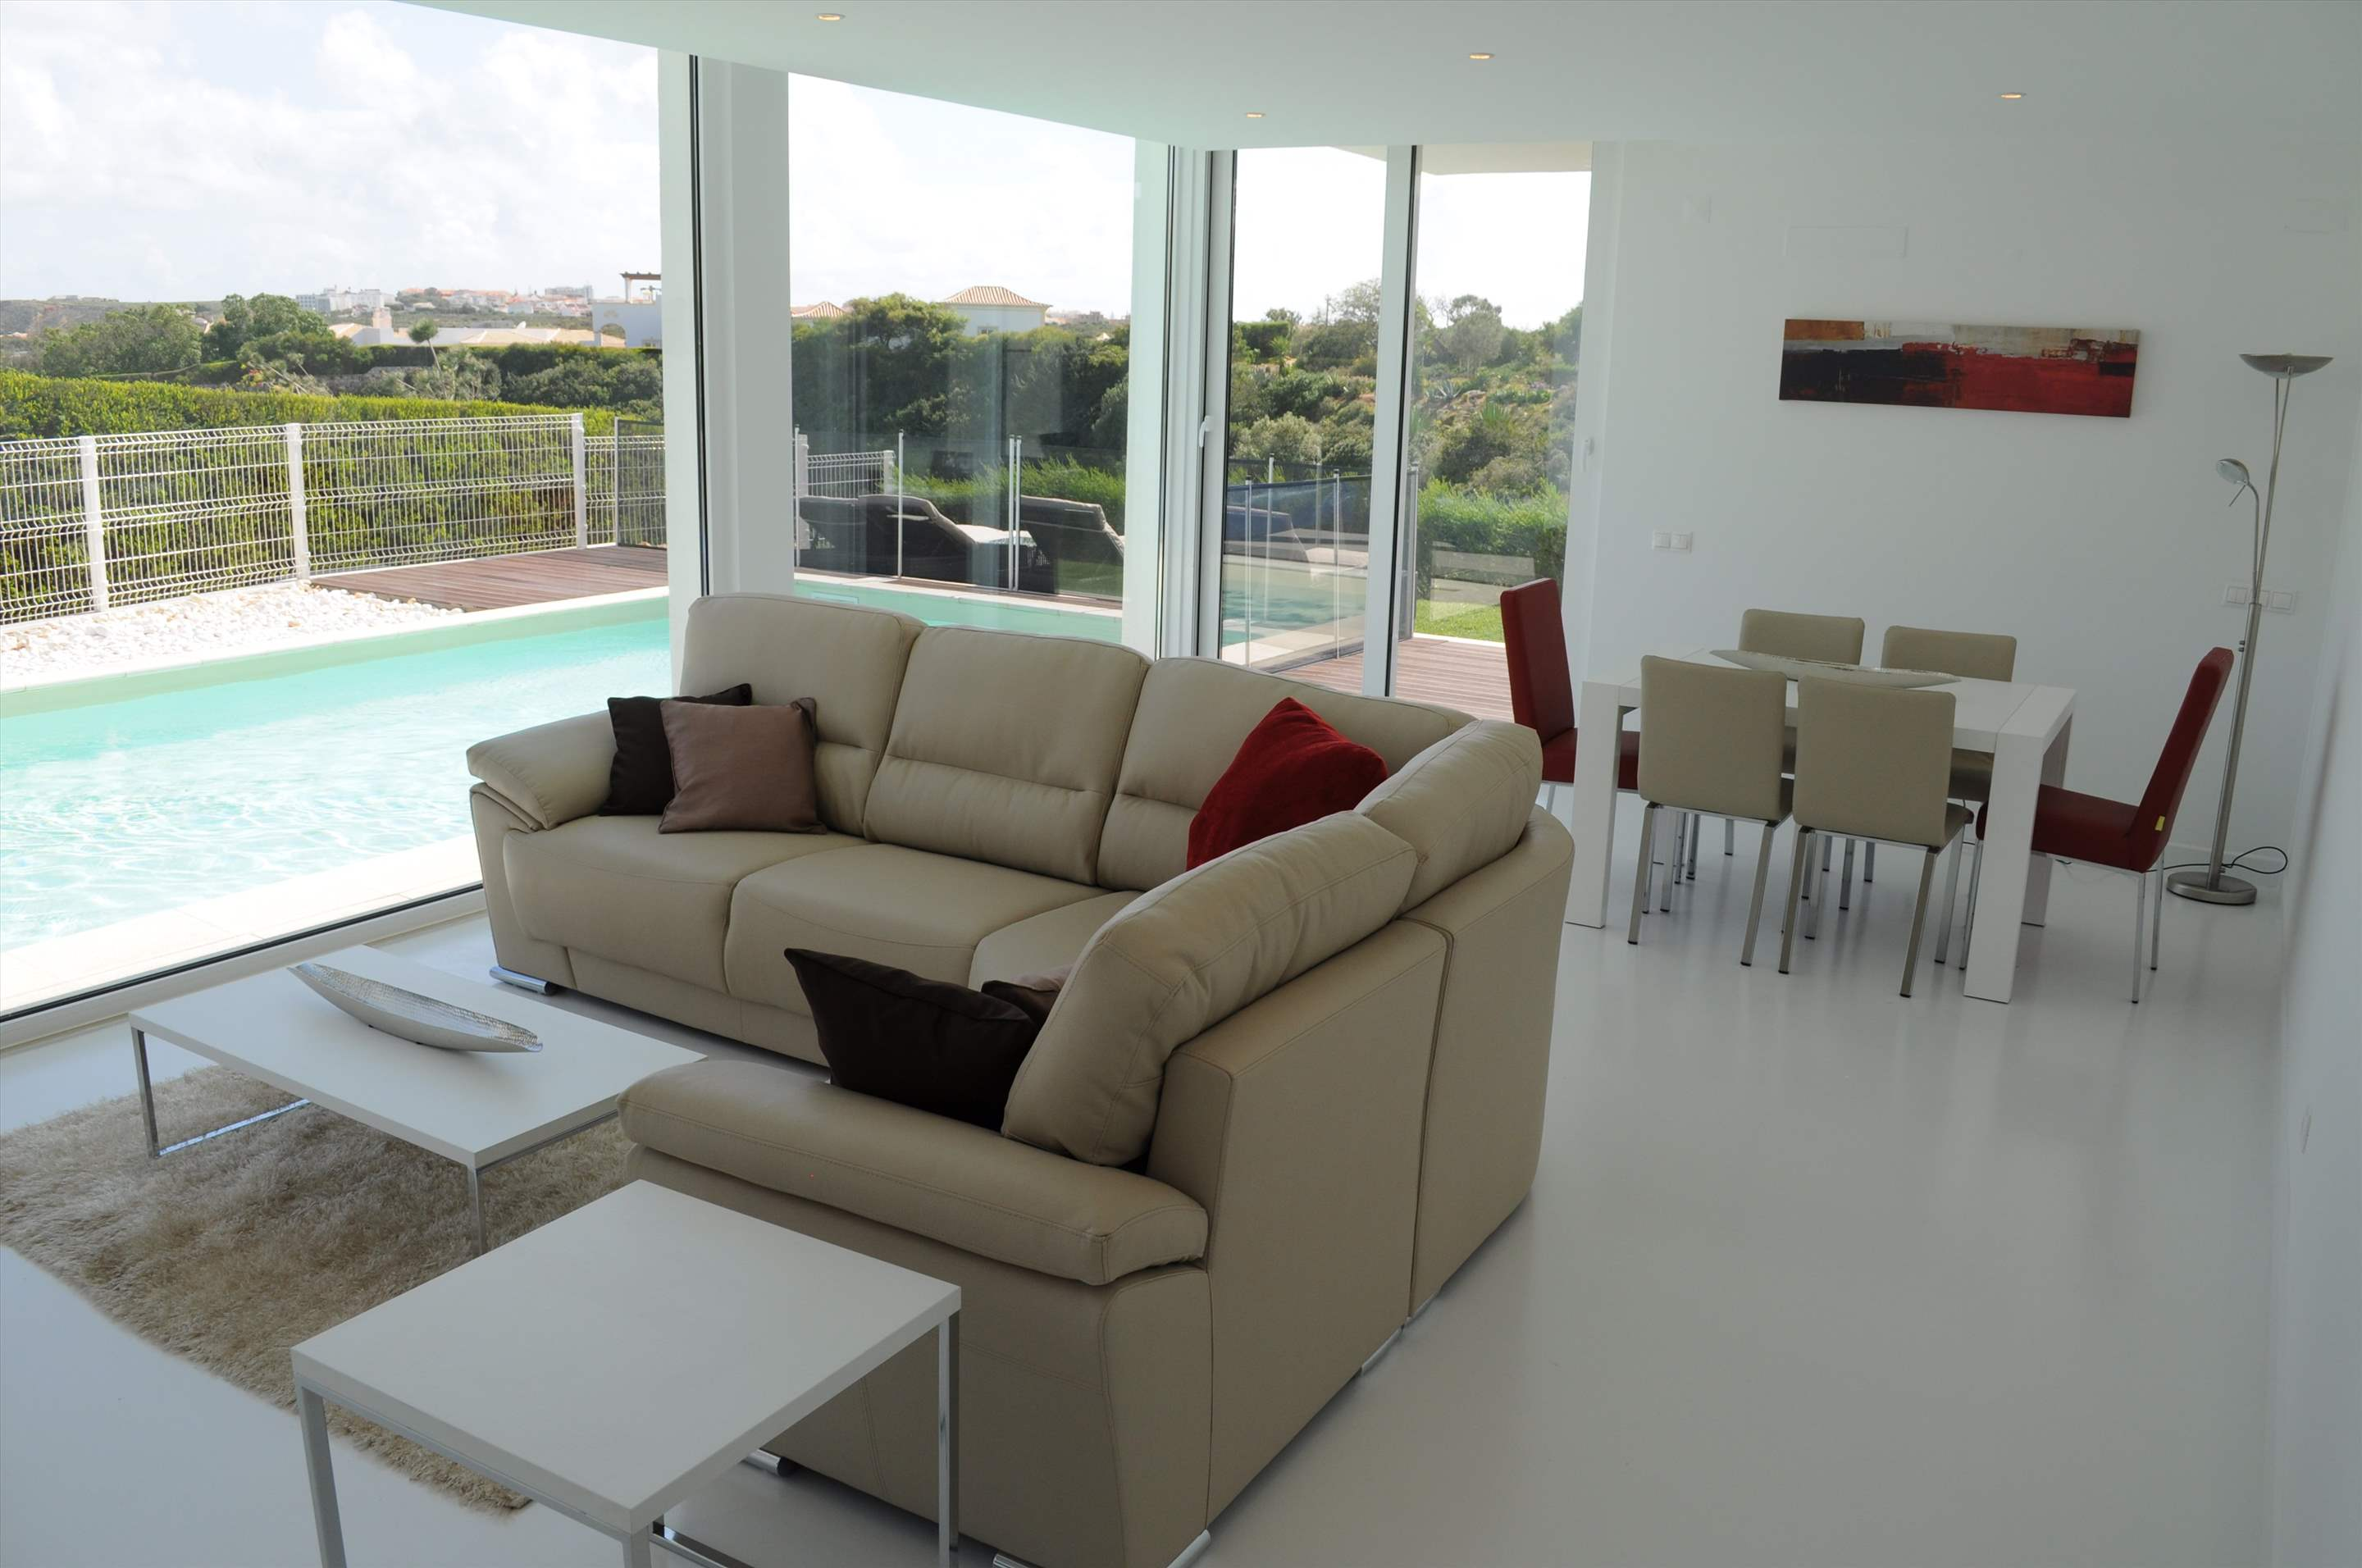 Martinhal Luxury Villa No.6, 3 bedroom villa in Martinhal Sagres, Algarve Photo #2